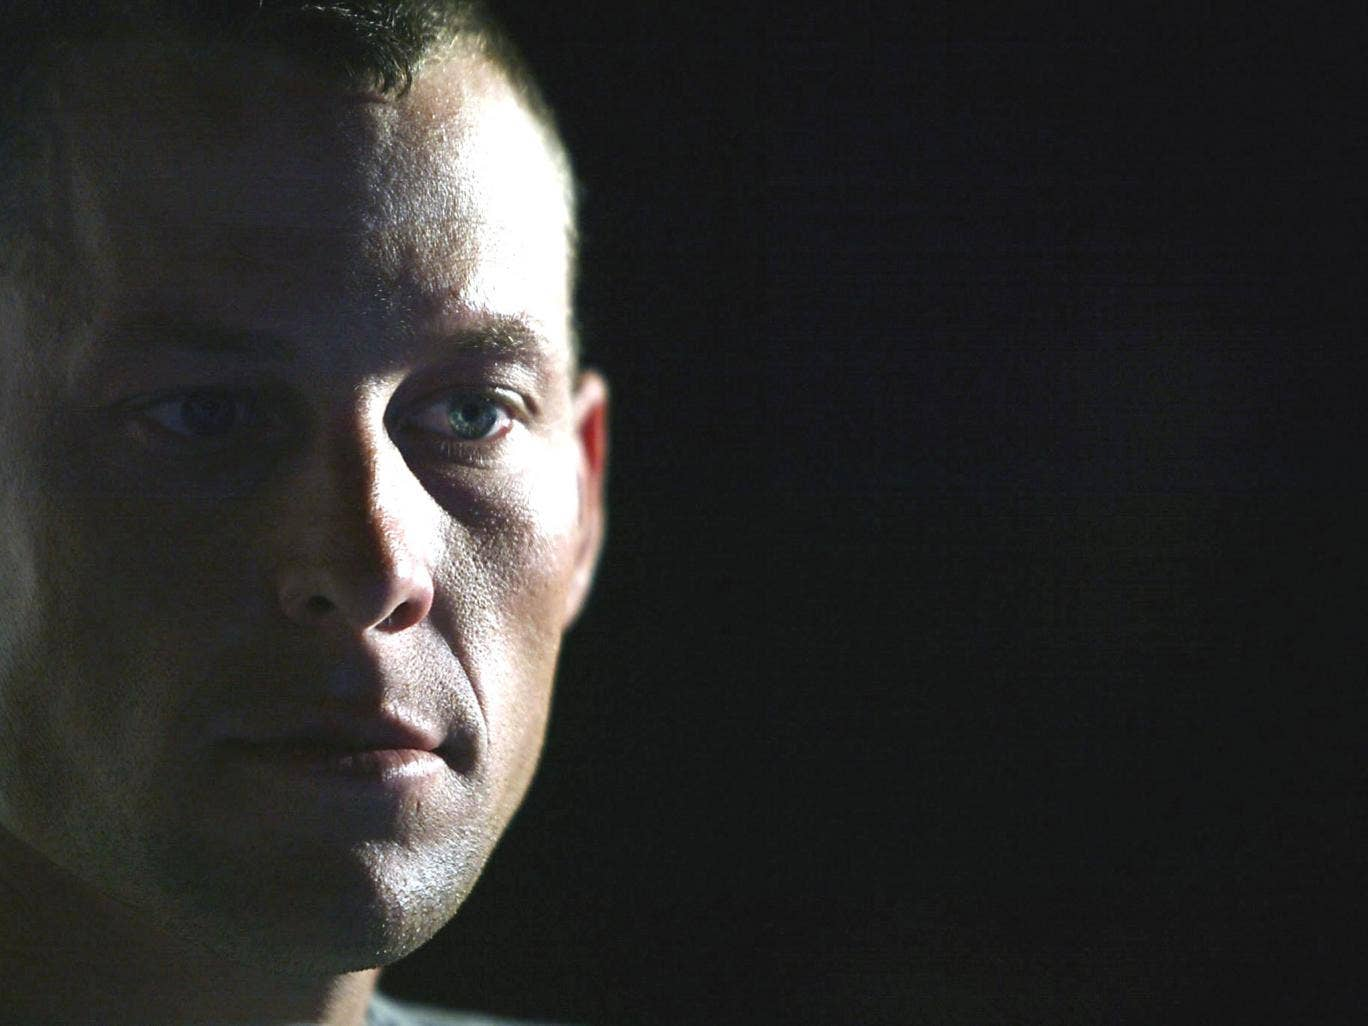 Game of shadows: Lance Armstrong has not fully faced the truth so cannot expect forgiveness